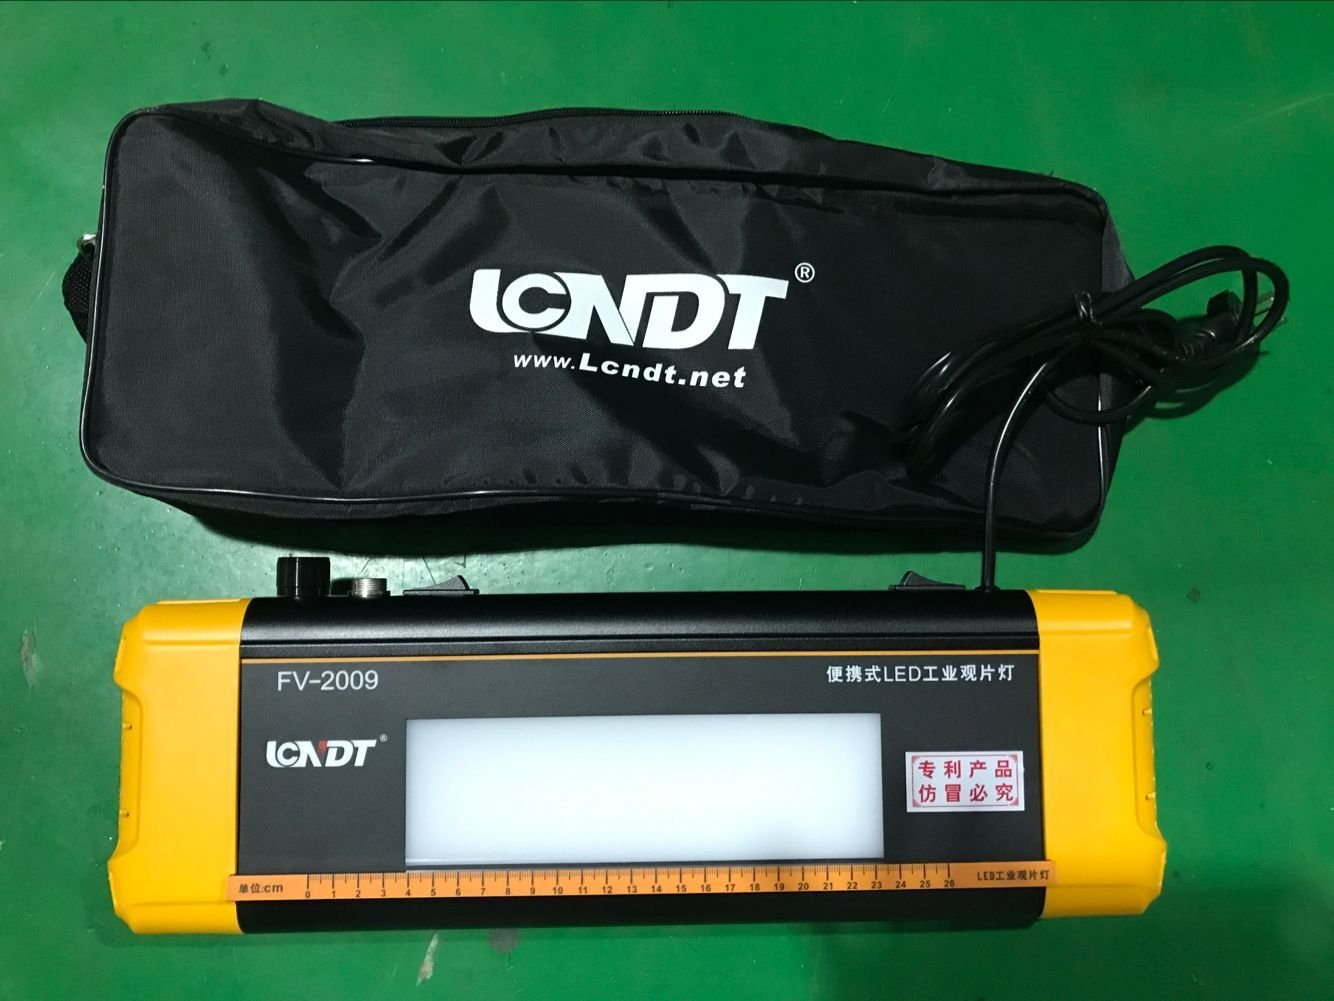 FV-2009 Industrial NDT Portable LED Film Viewer 2.4 x 8 inch (60 mm x 200 mm)